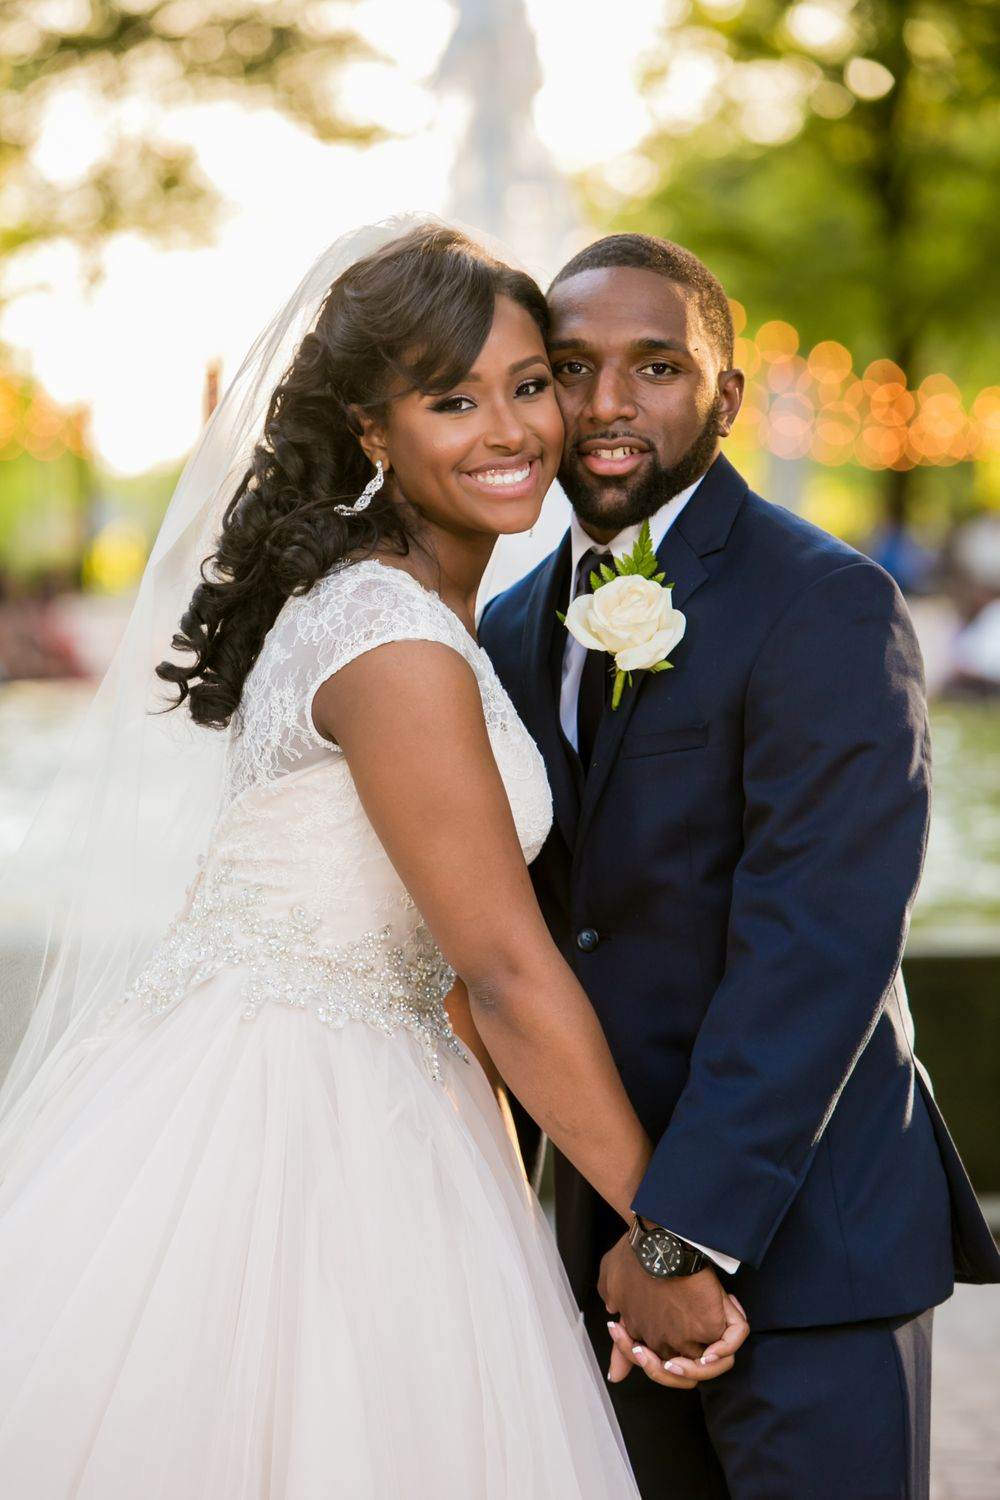 Bride Jamil'ya and groom Julian following their wedding ceremony at the Lace House in Columbia, SC